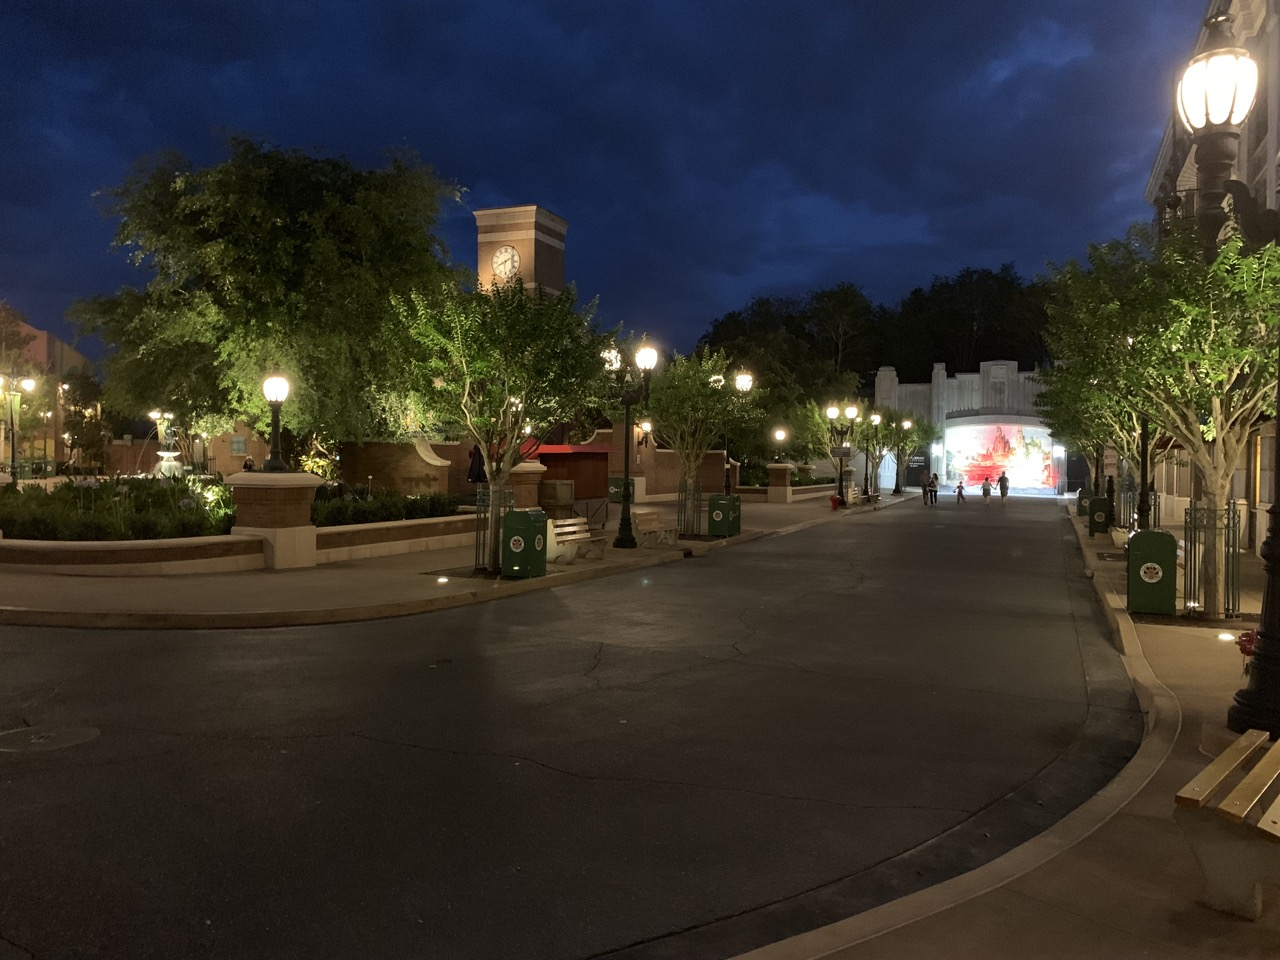 disney world trip report early summer 2019 day two 62 quiet.jpeg